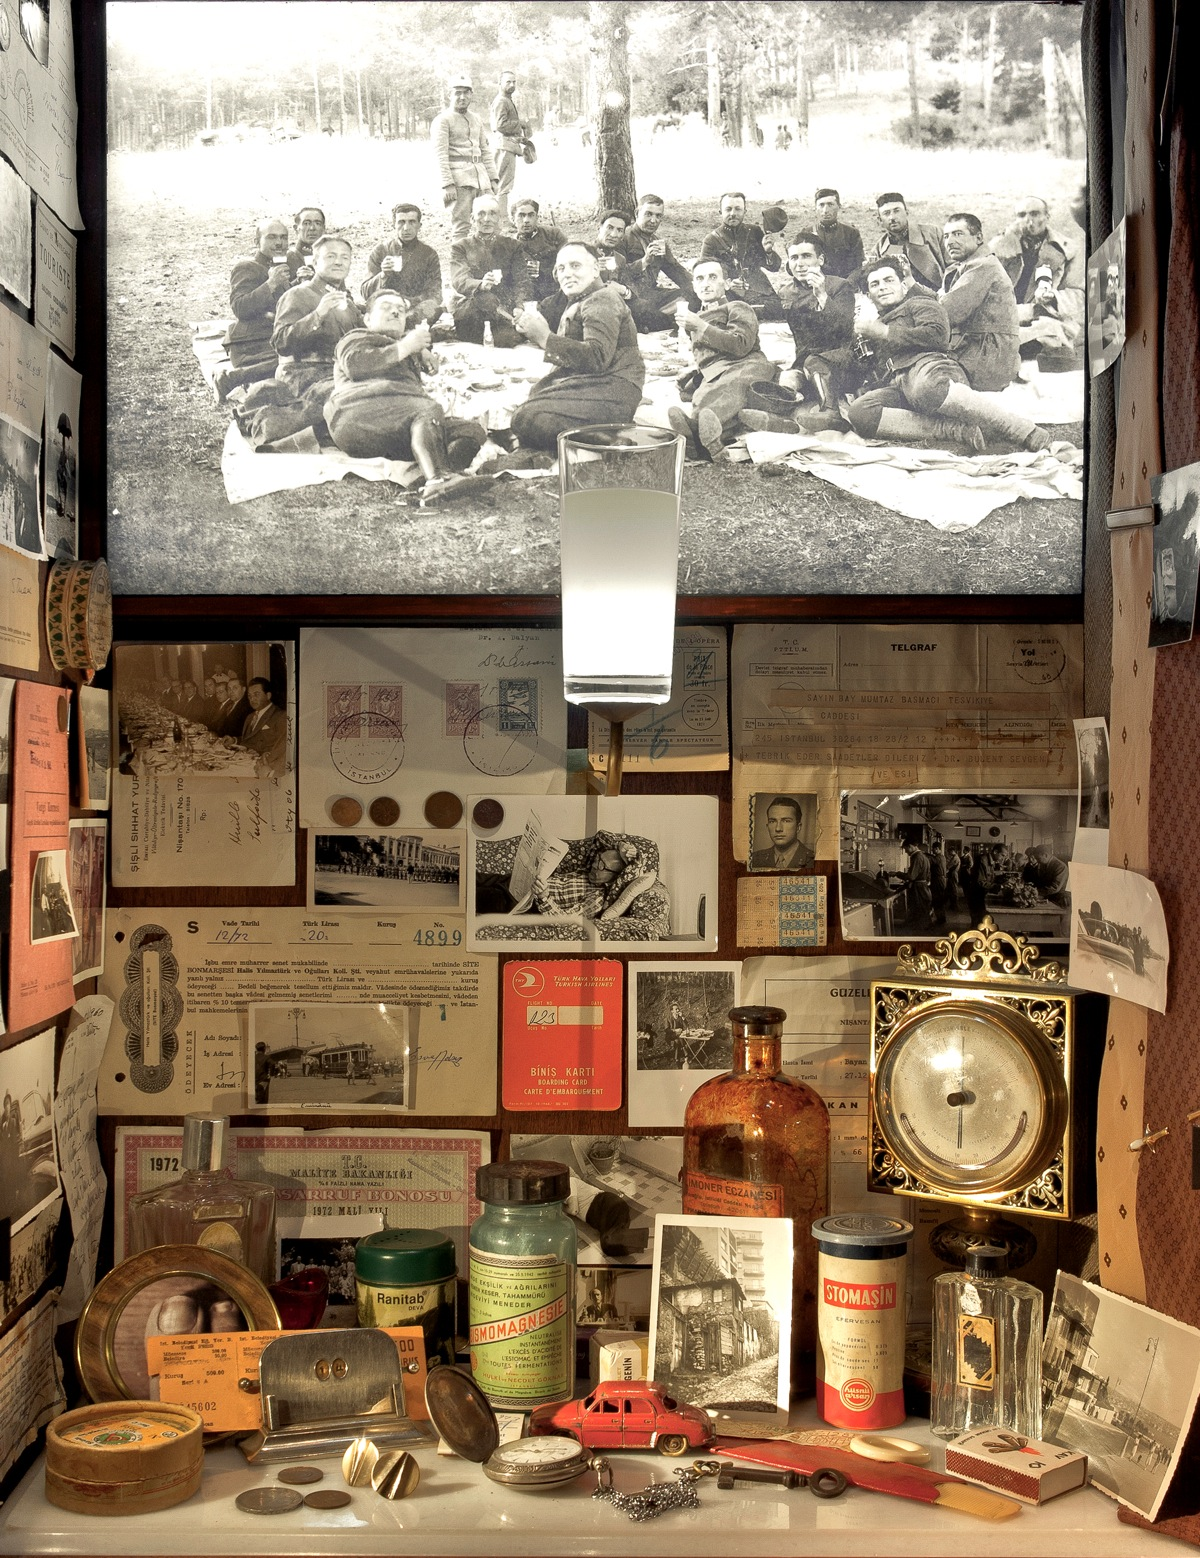 2. The Museum of Innocence at Somerset House. Chapter 47. All rights belong to The Museum of Innocence-blog